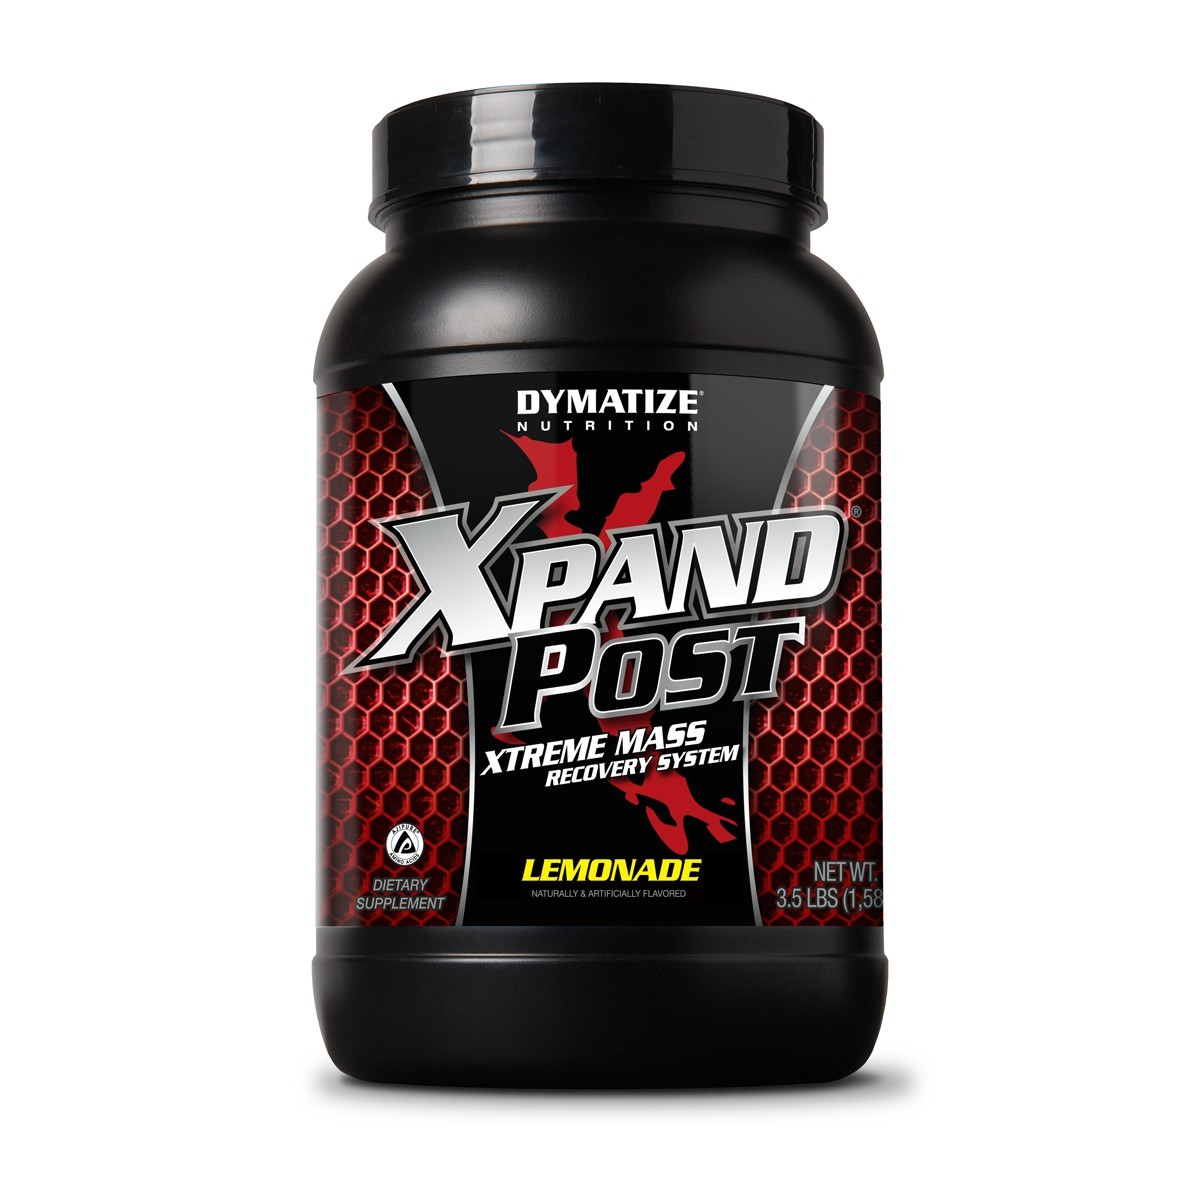 Dymatize Xpand Post